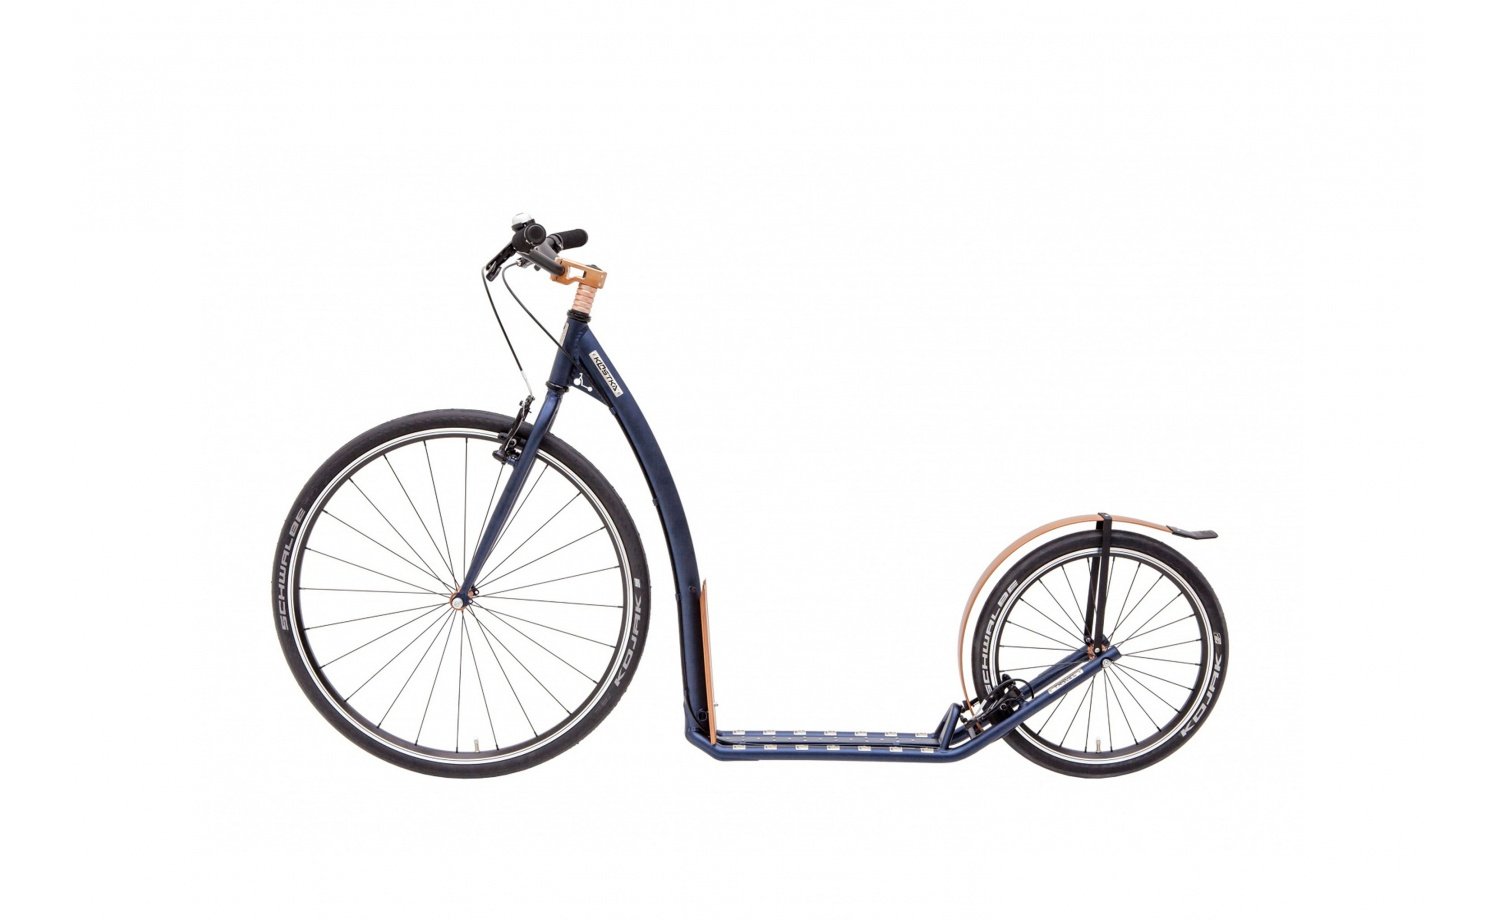 Footbike KOSTKA TRAVEL Wedding (G5) - Limited wedding edition